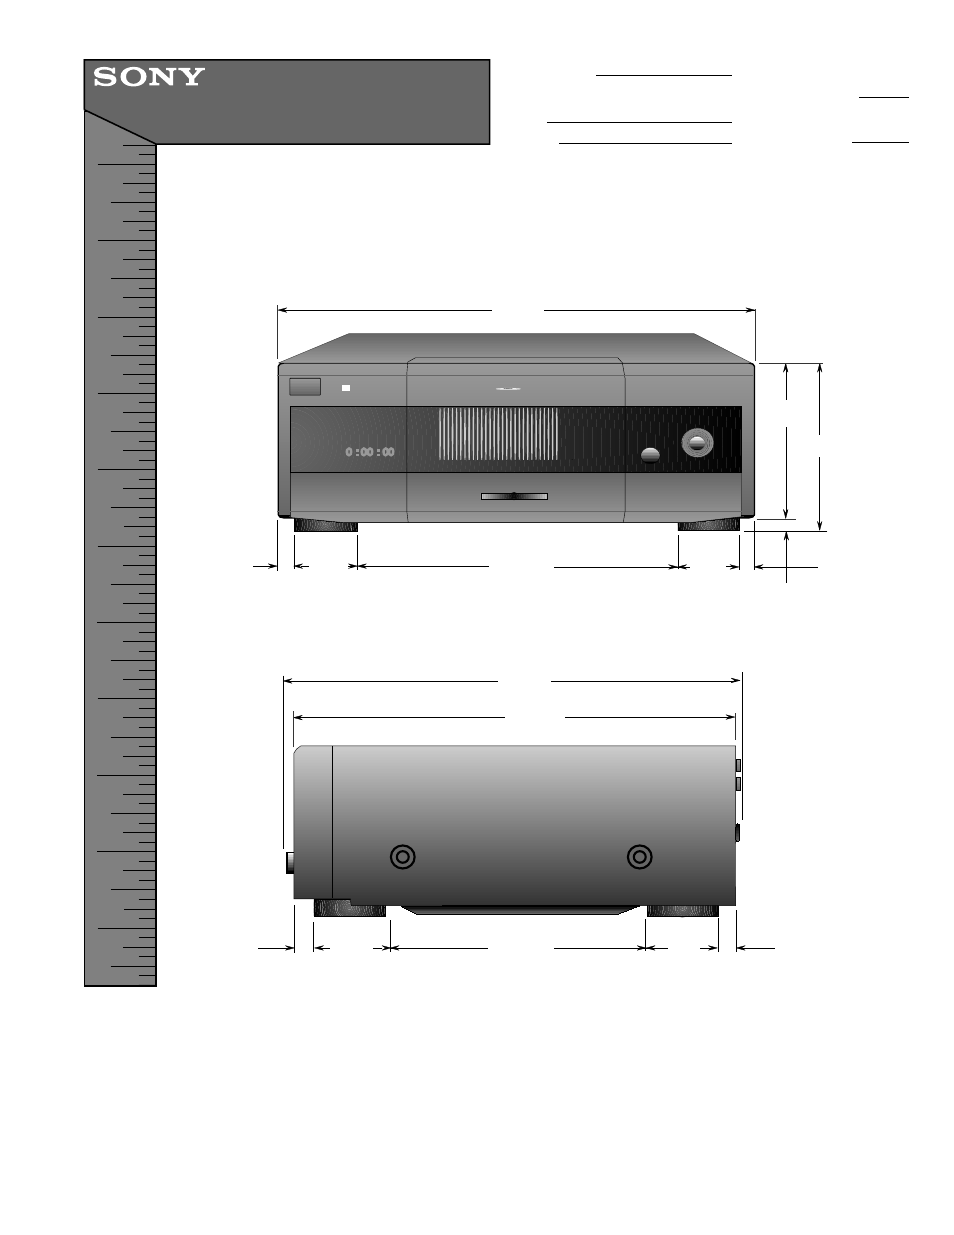 Sony DVP-CX860 User Manual | 1 page